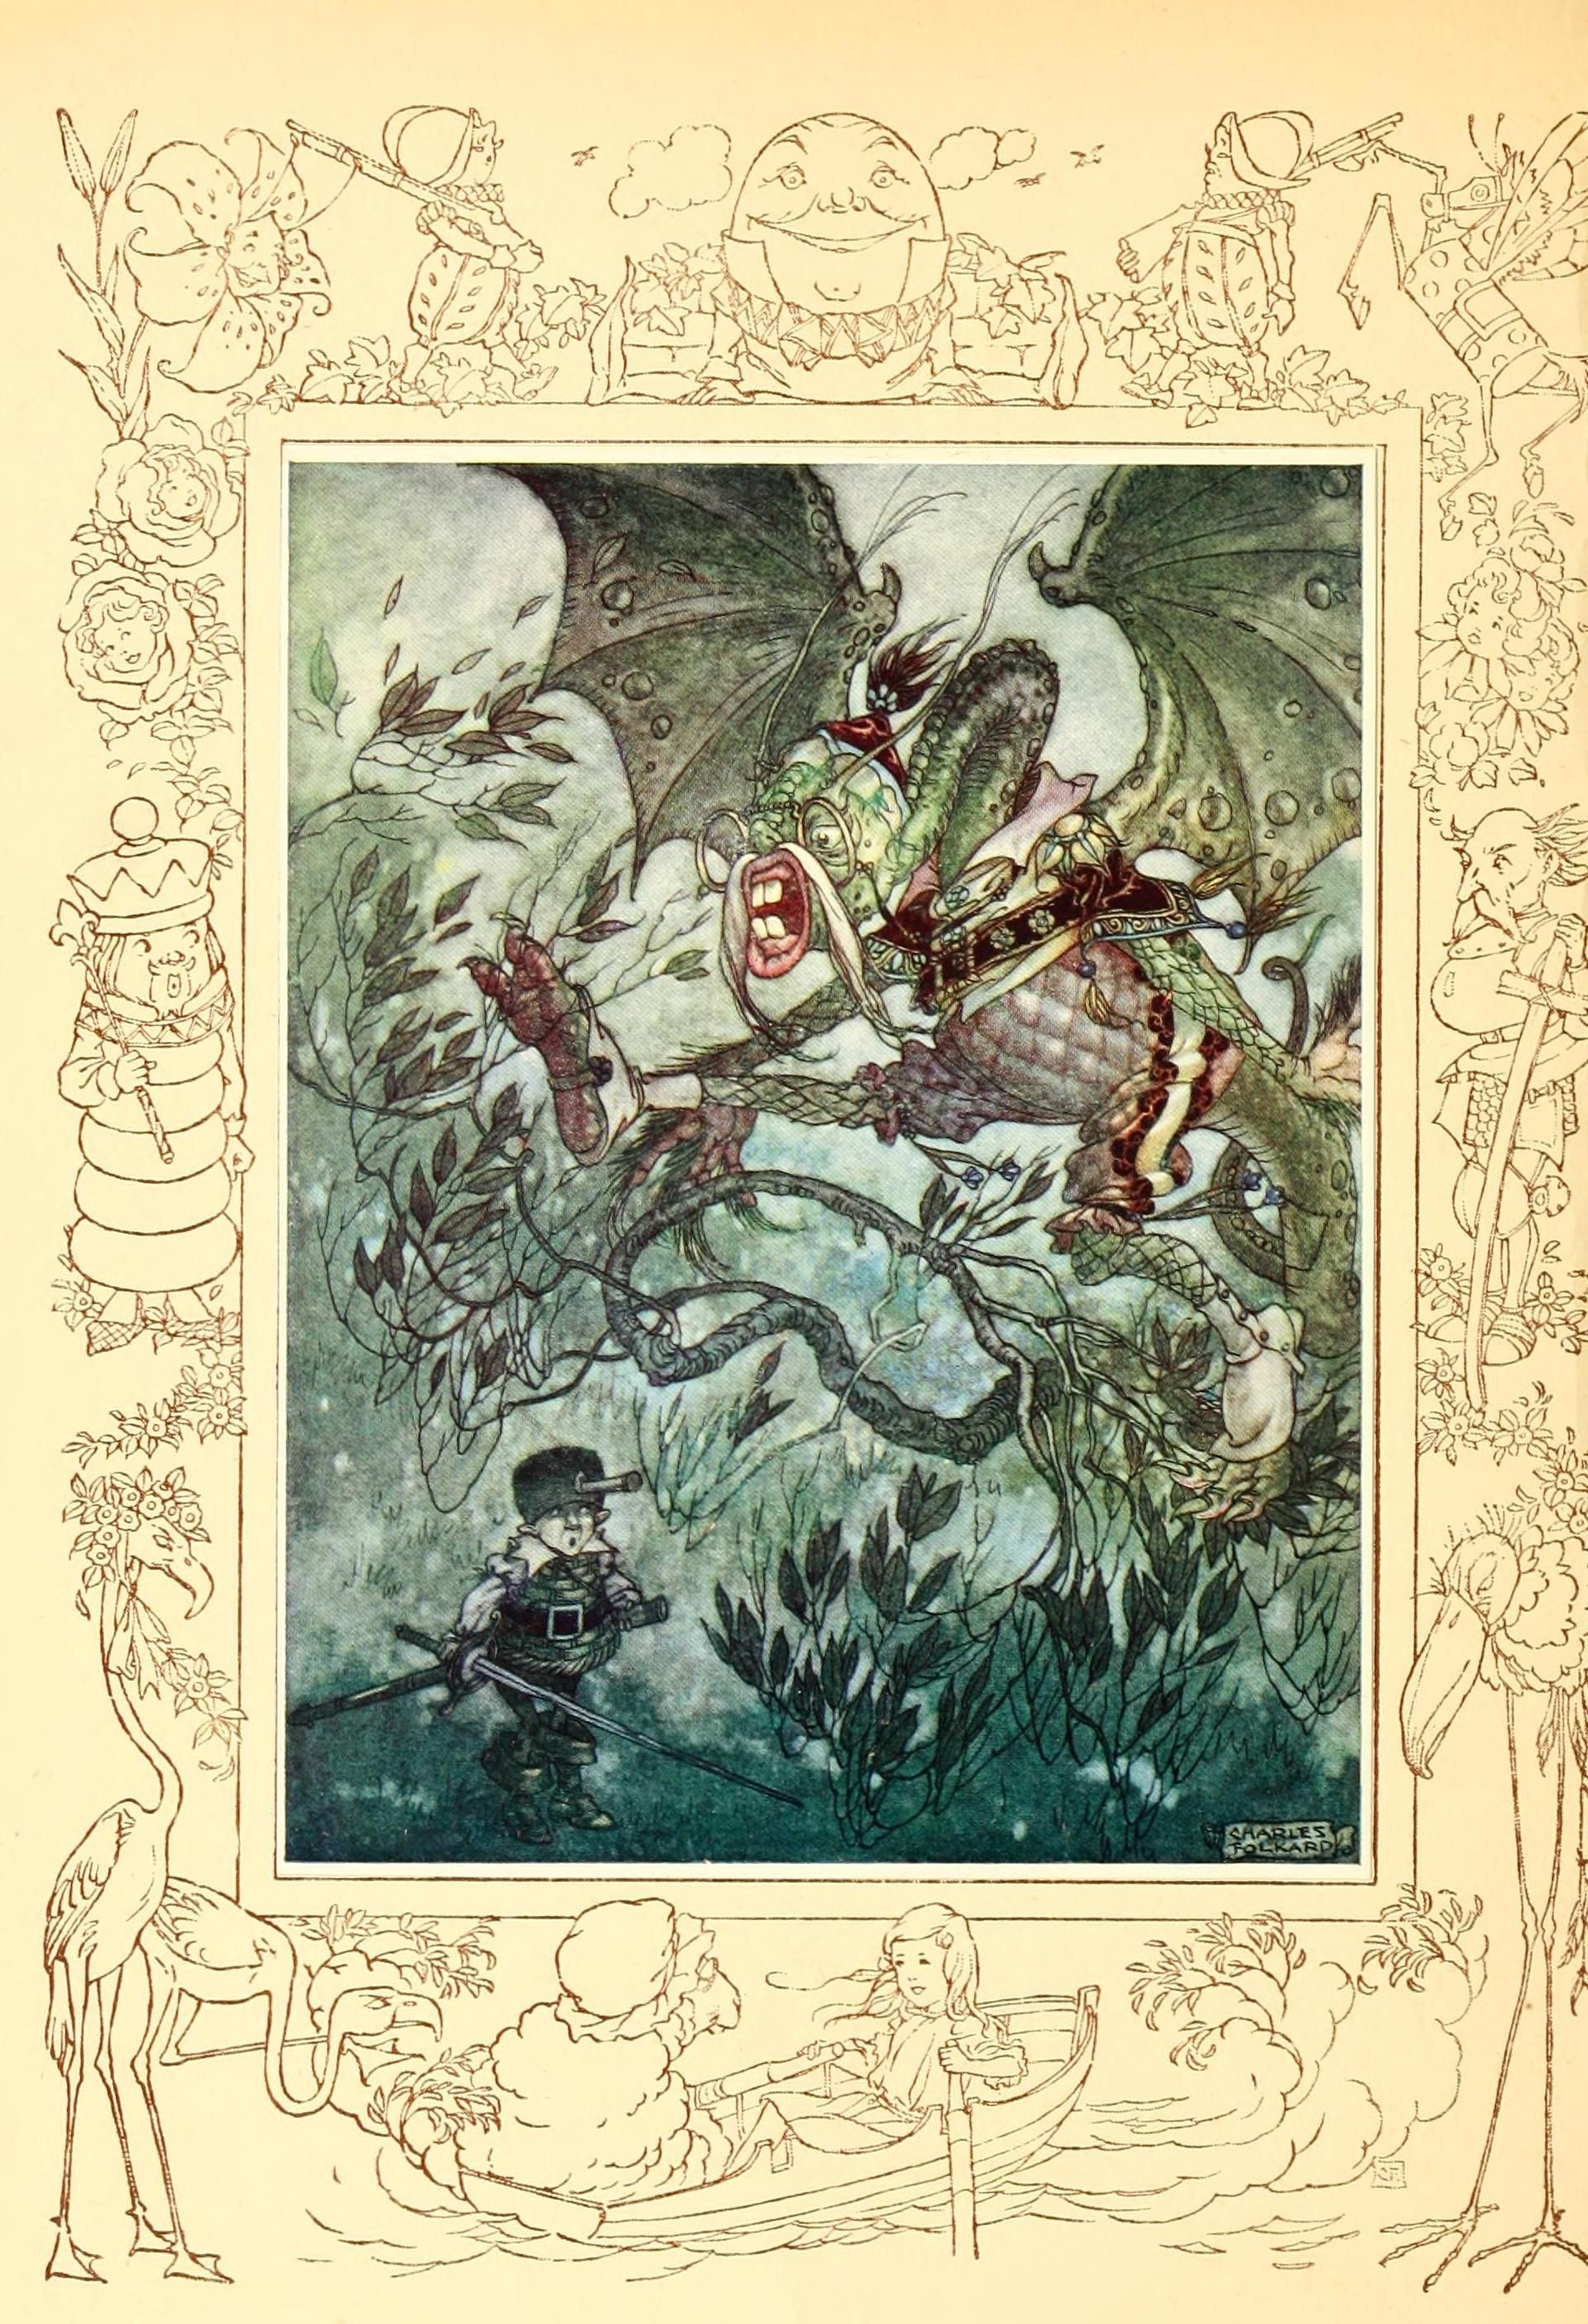 Jabberwocky - Songs from Alice in Wonderland and Through the Looking-Glass by Lewis Carroll, 1921